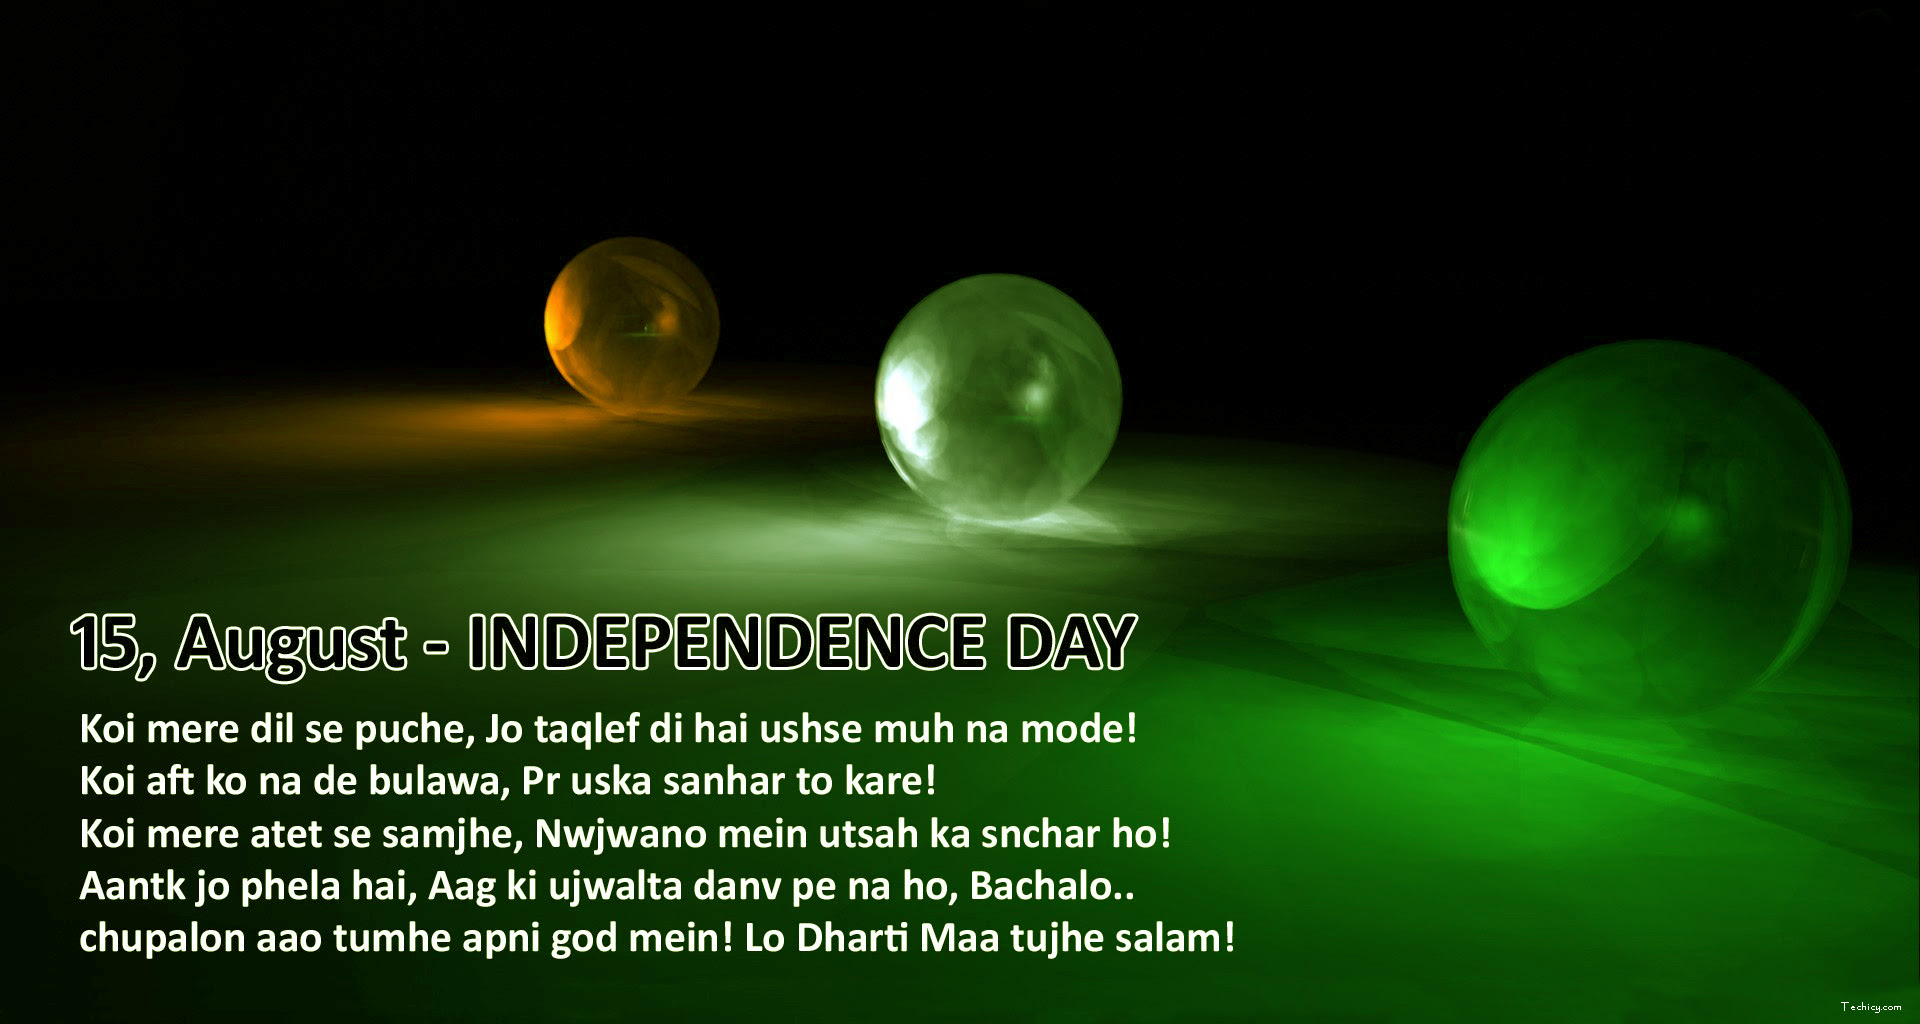 Independence Day Whatsapp Dp Images Wallpapers Whatsapp Lover